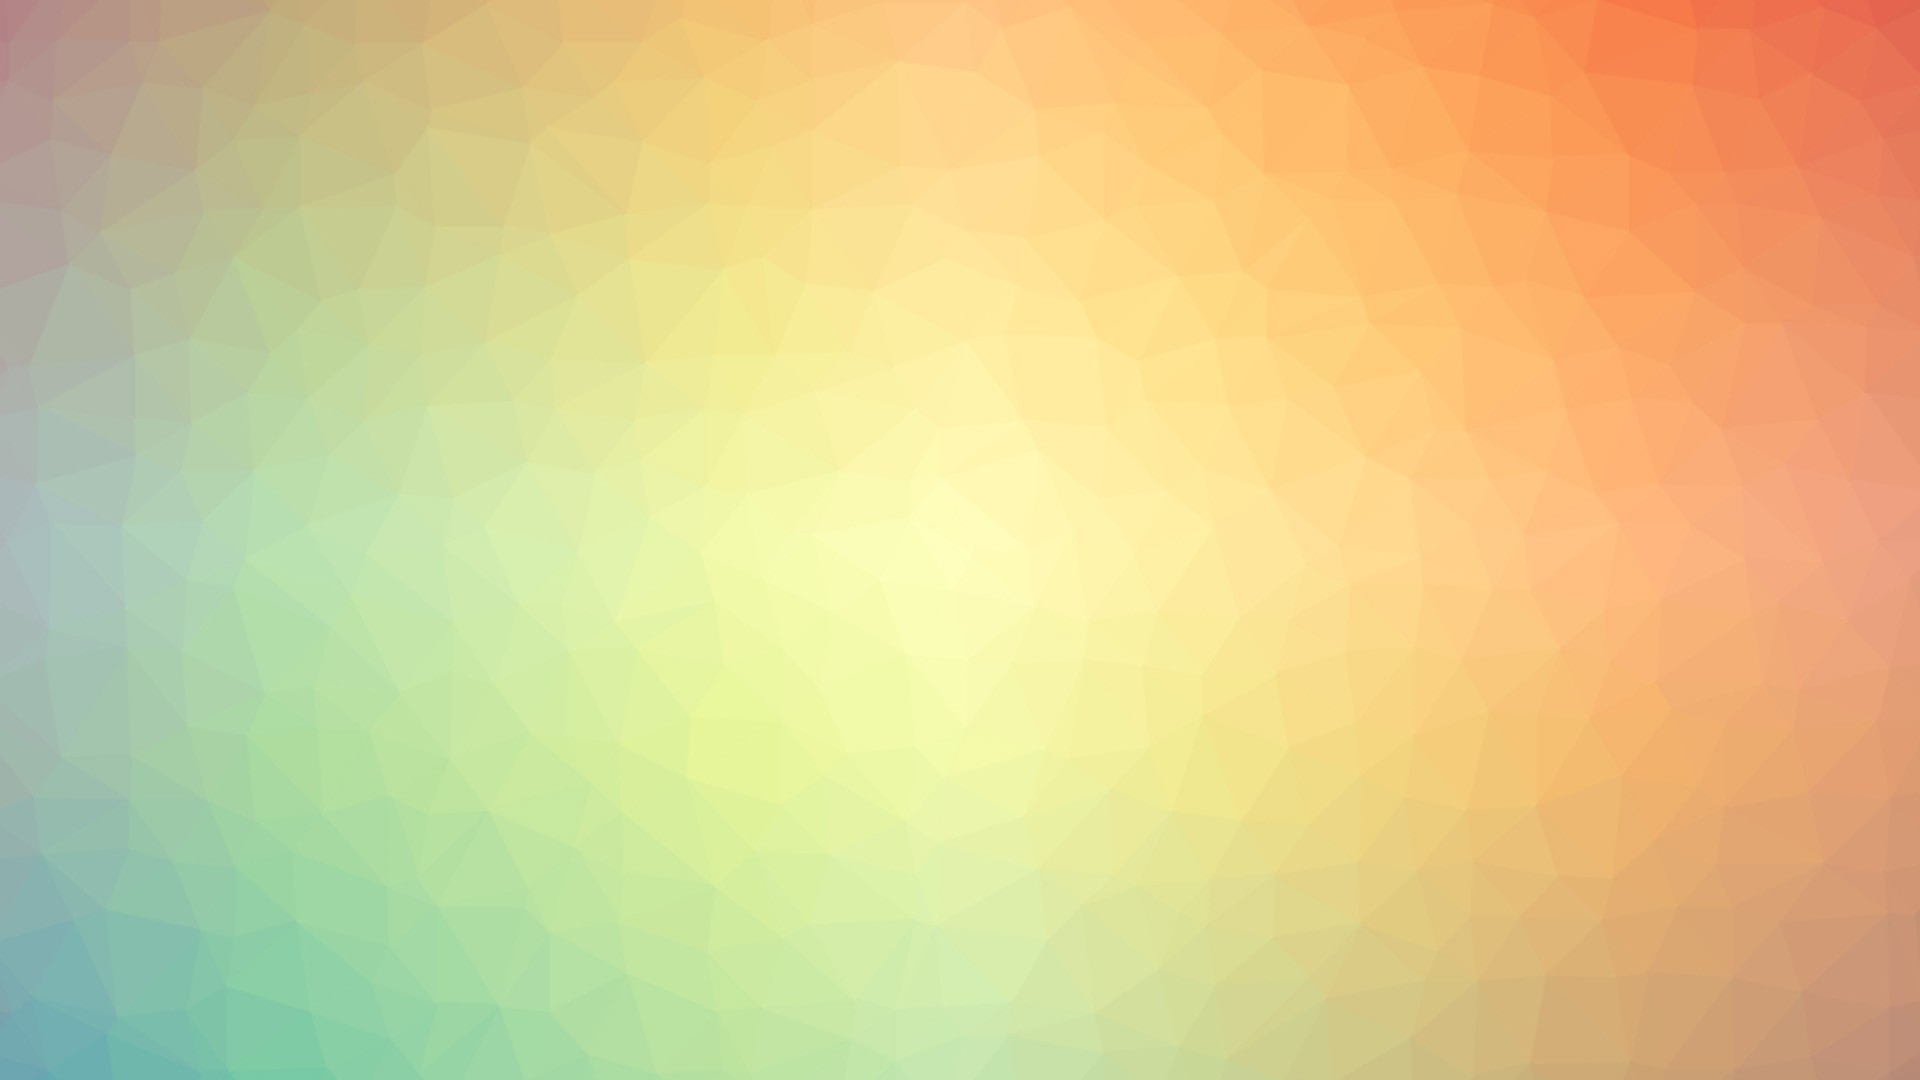 pattern, Red, Orange, Yellow, Green, Blue, Purple, Rainbows Wallpapers HD /  Desktop and Mobile Backgrounds